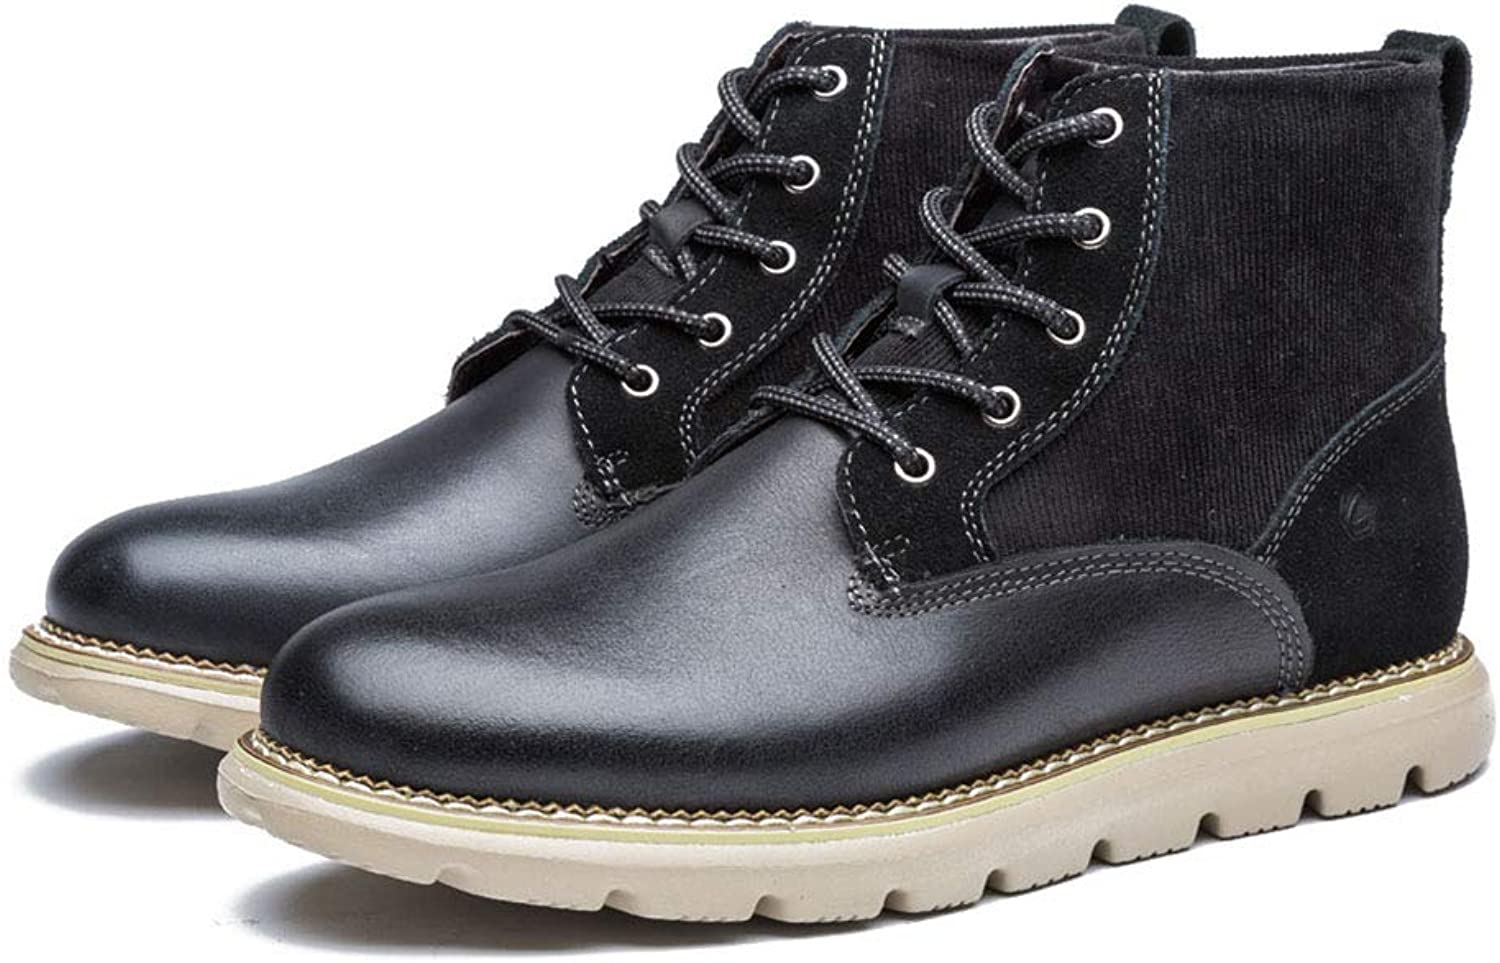 Men's Martin Boots Fashion Comfortable Leather Boots Winter Plus Velvet Lace-up Booties Ankle Boots (color   A, Size   43)